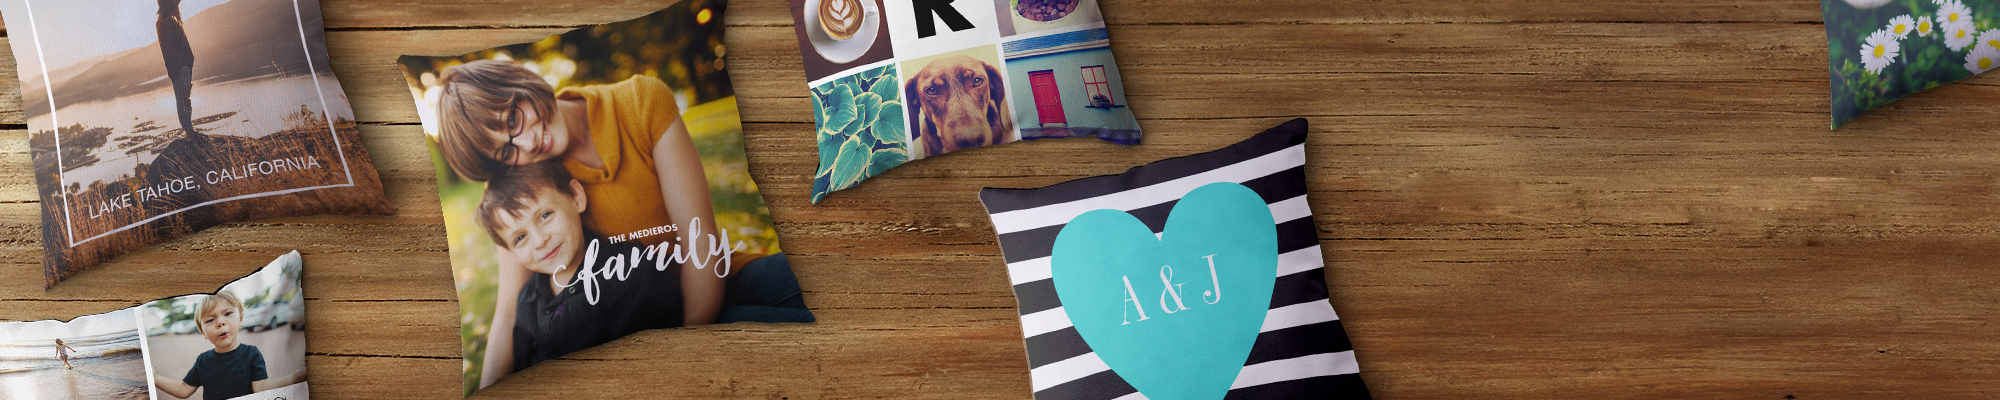 Photo Gifts : Find all the perfect spaces to show off your favorite faces, hobbies, and adventures.